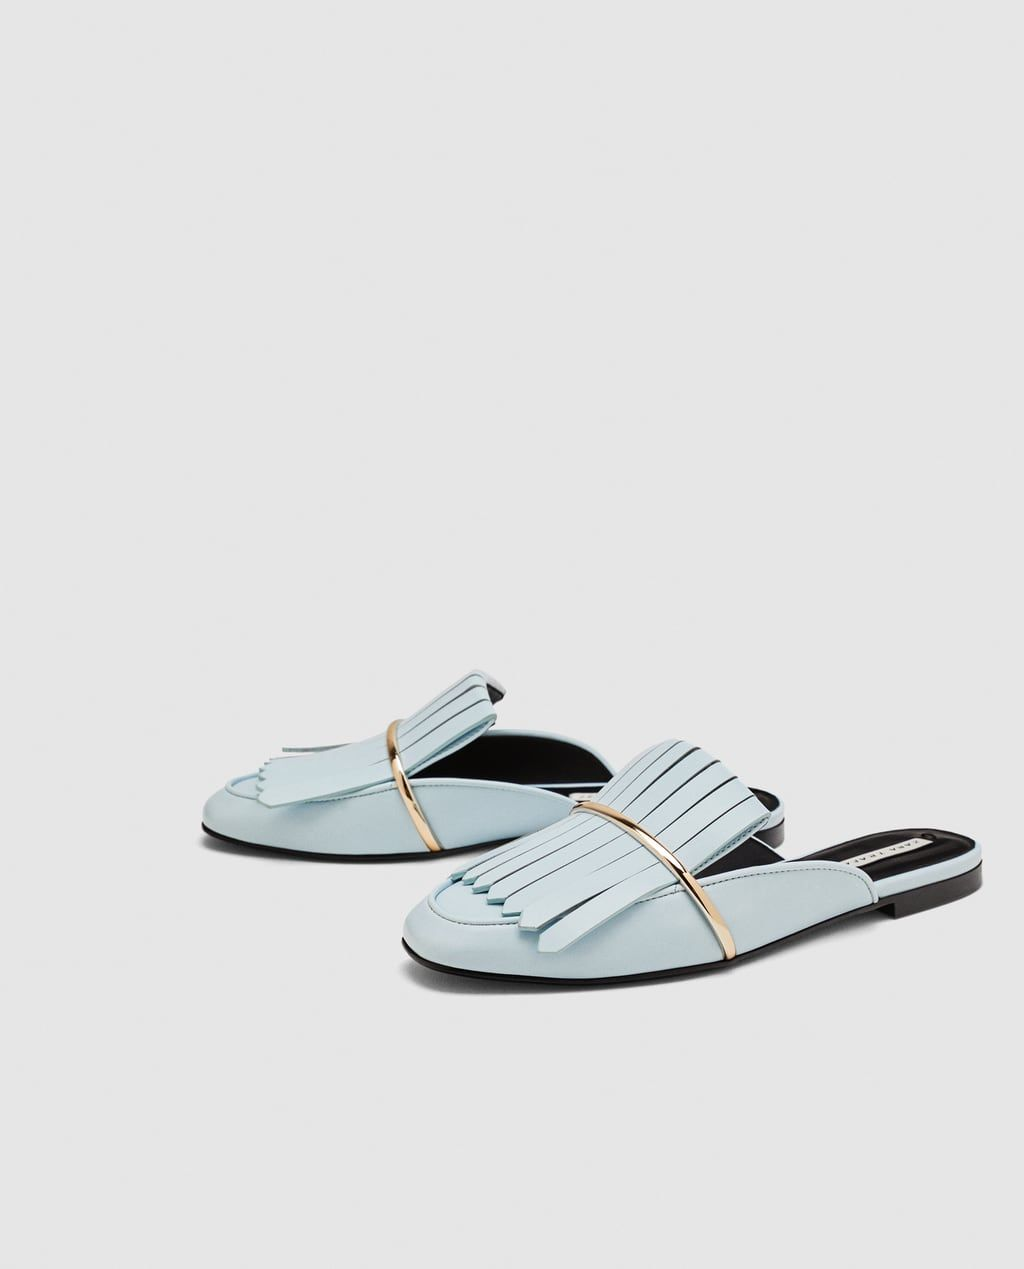 cefc0a21f3fc2 Image 4 of FLAT MULES WITH FRINGED DETAIL from Zara | Closet, if ...